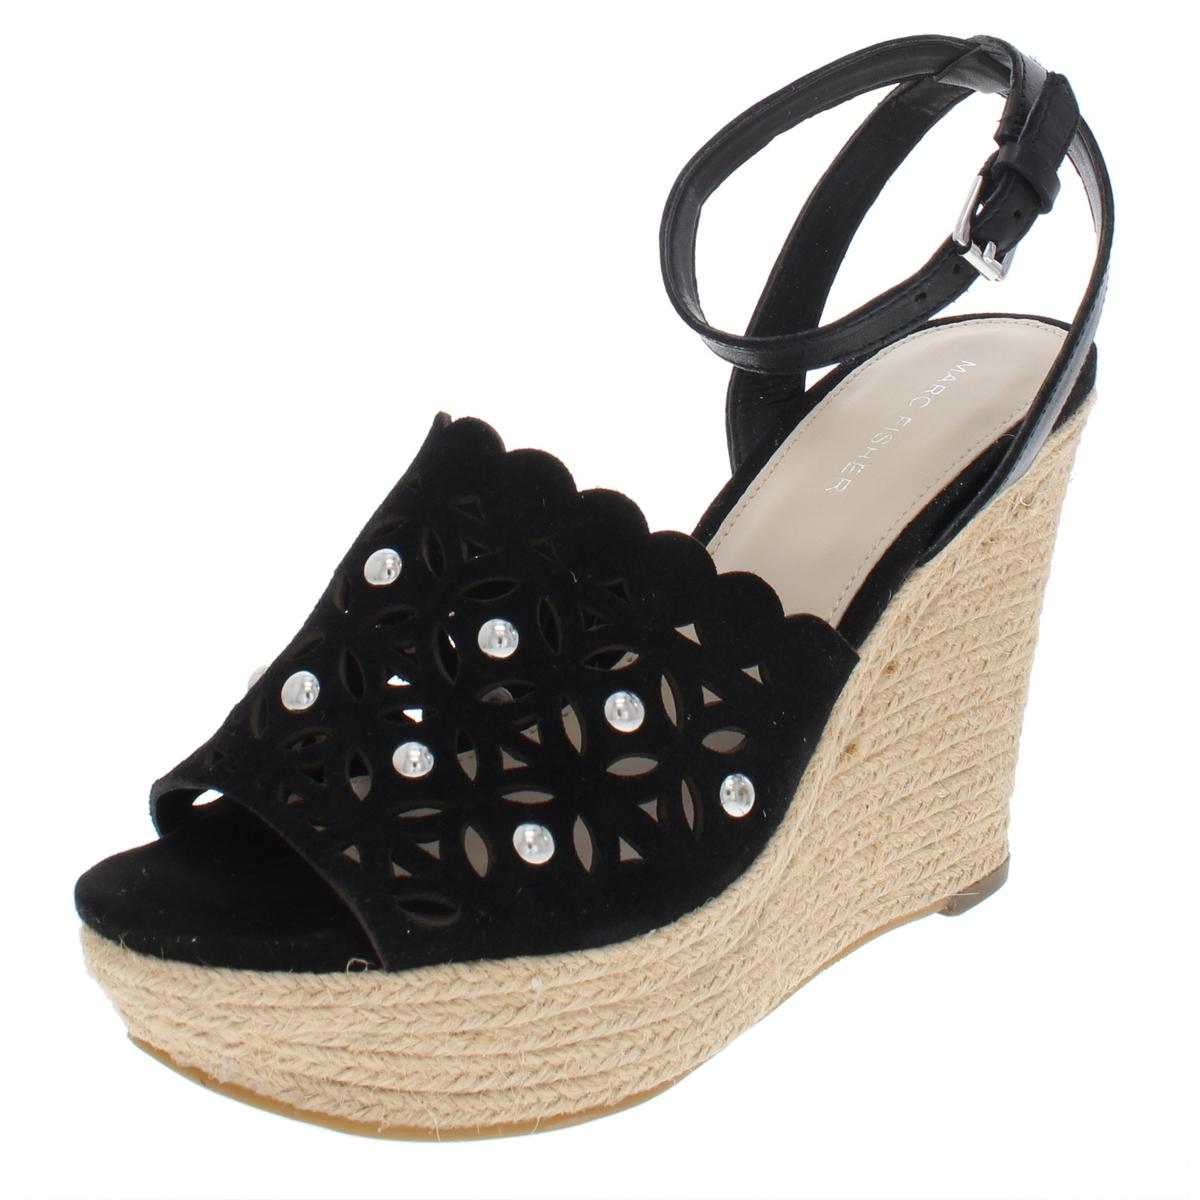 3e2c9487f24 Details about Marc Fisher Womens Hata Suede Wedges Embellished Espadrilles  Shoes BHFO 6455